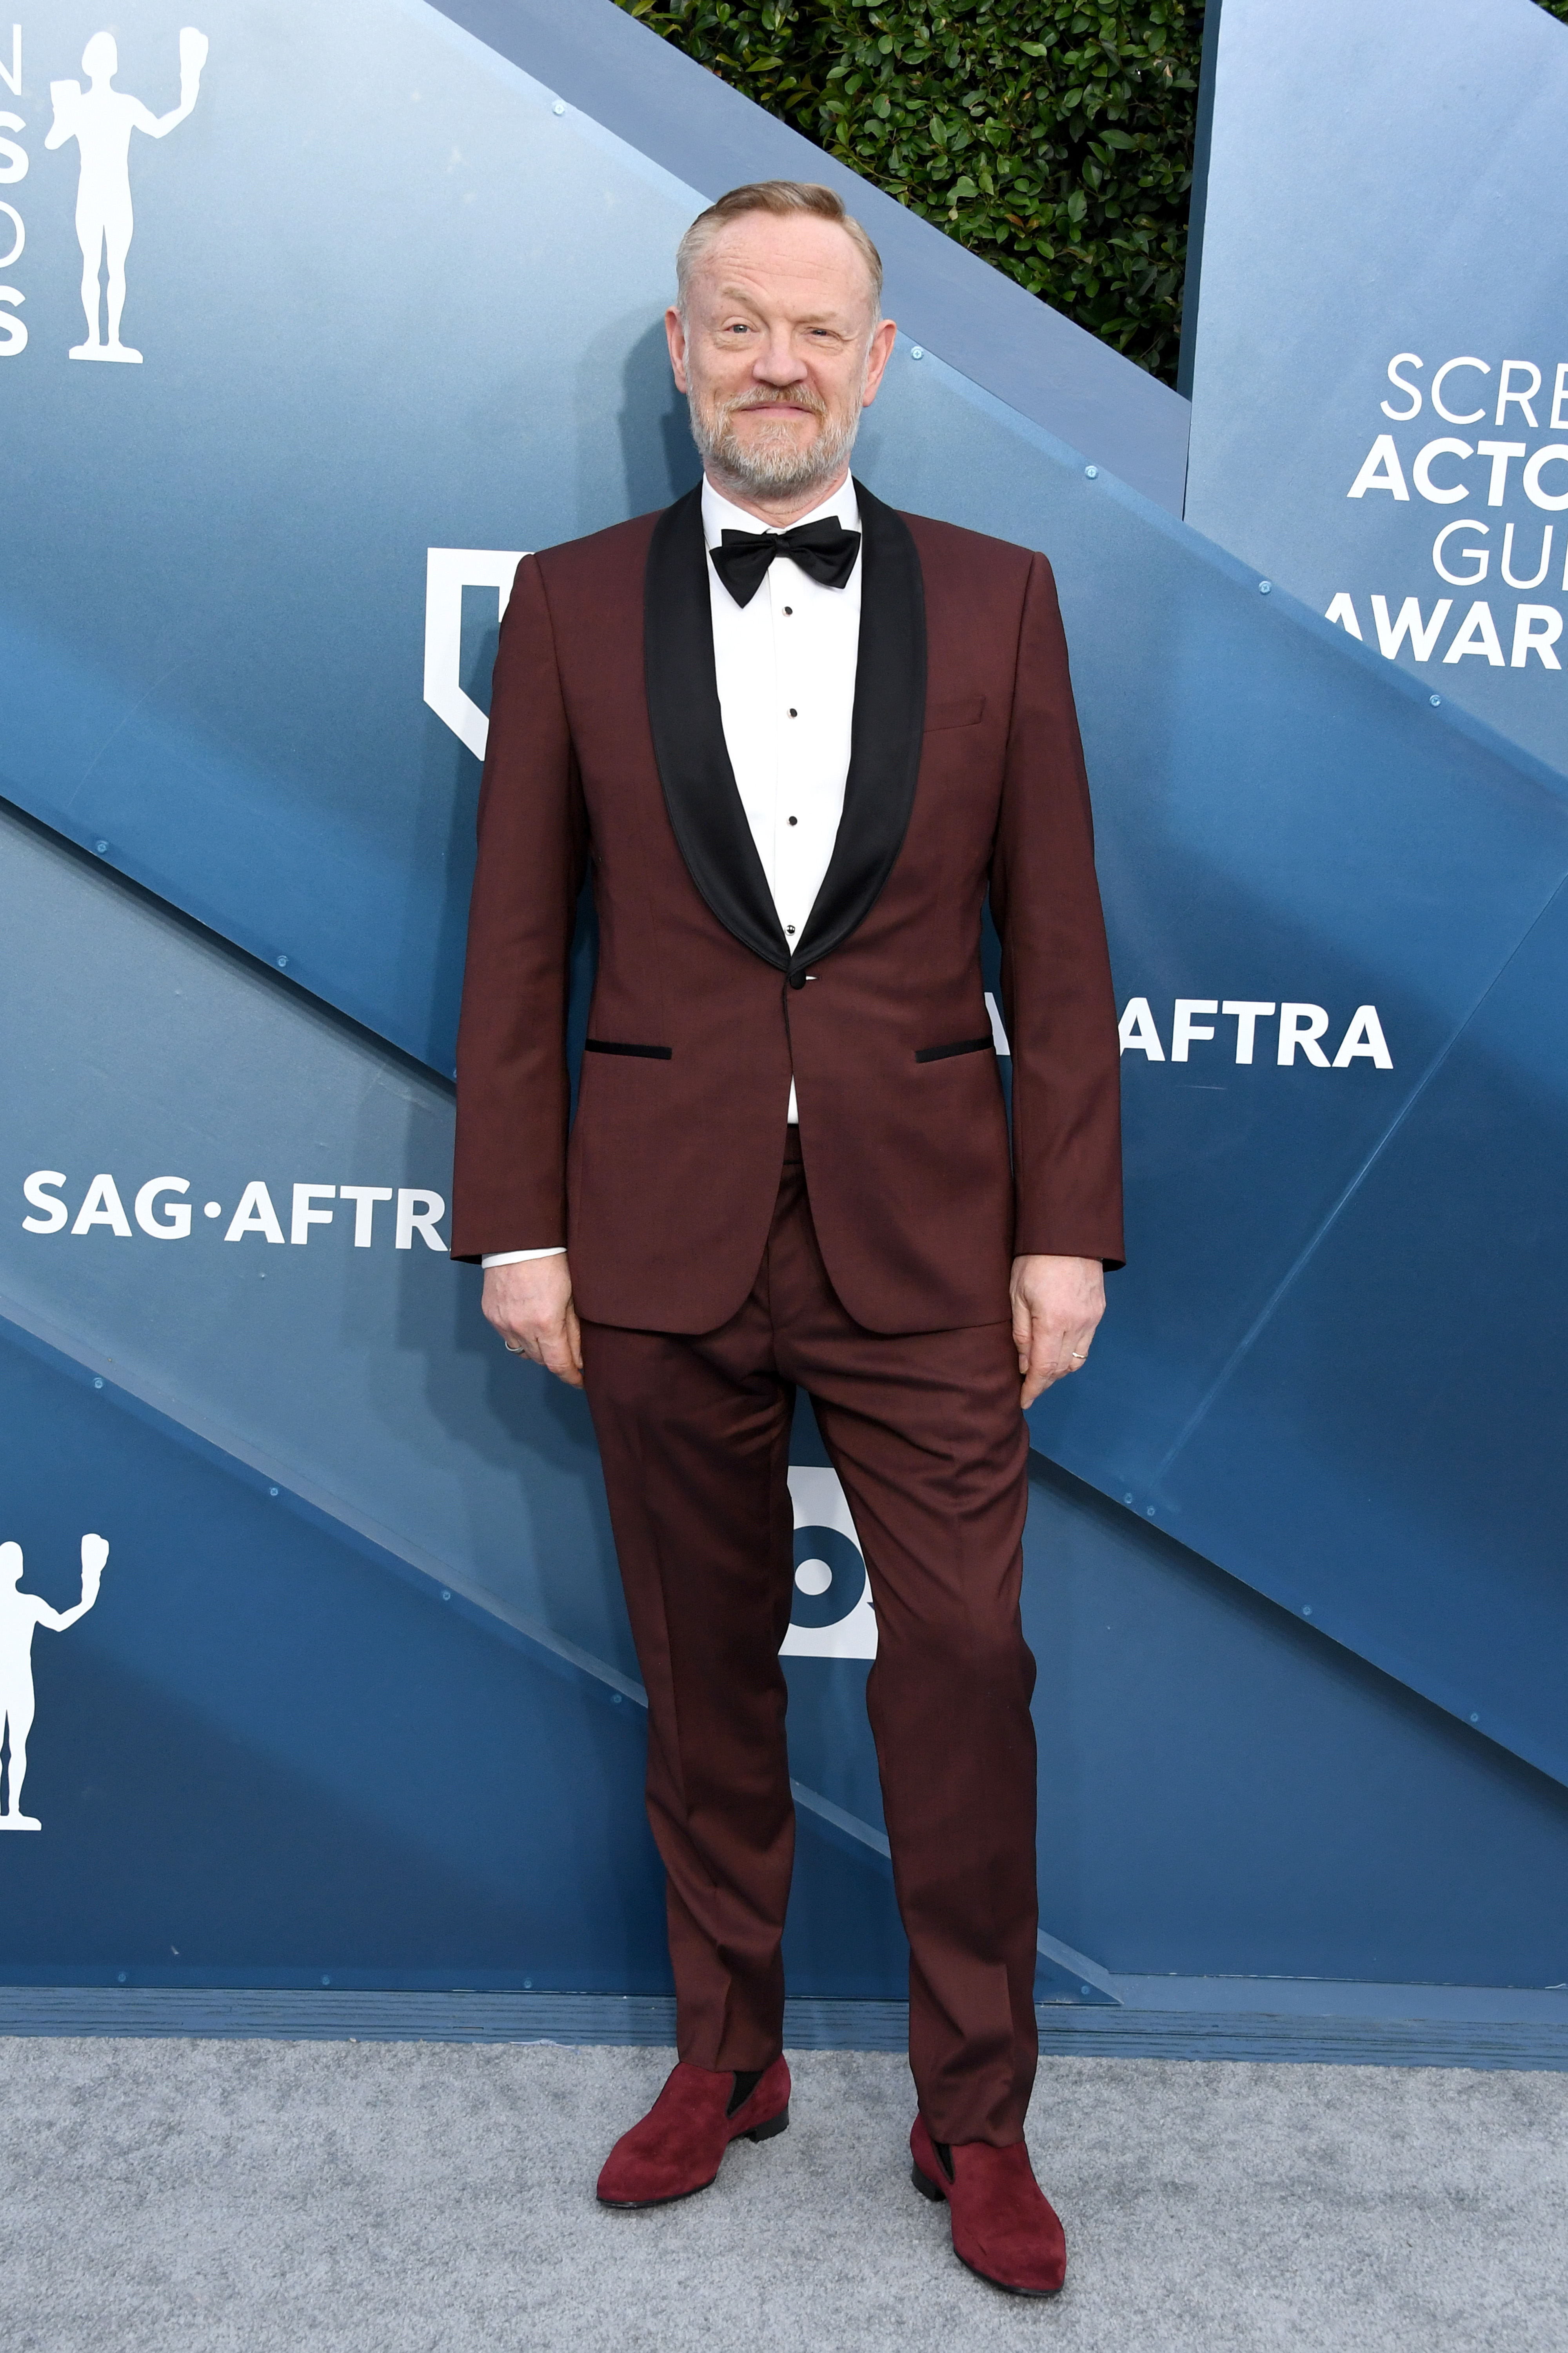 LOS ANGELES, CALIFORNIA - JANUARY 19: Jared Harris attends the 26th Annual Screen ActorsGuild Awards at The Shrine Auditorium on January 19, 2020 in Los Angeles, California. (Photo by Jon Kopaloff/Getty Images)